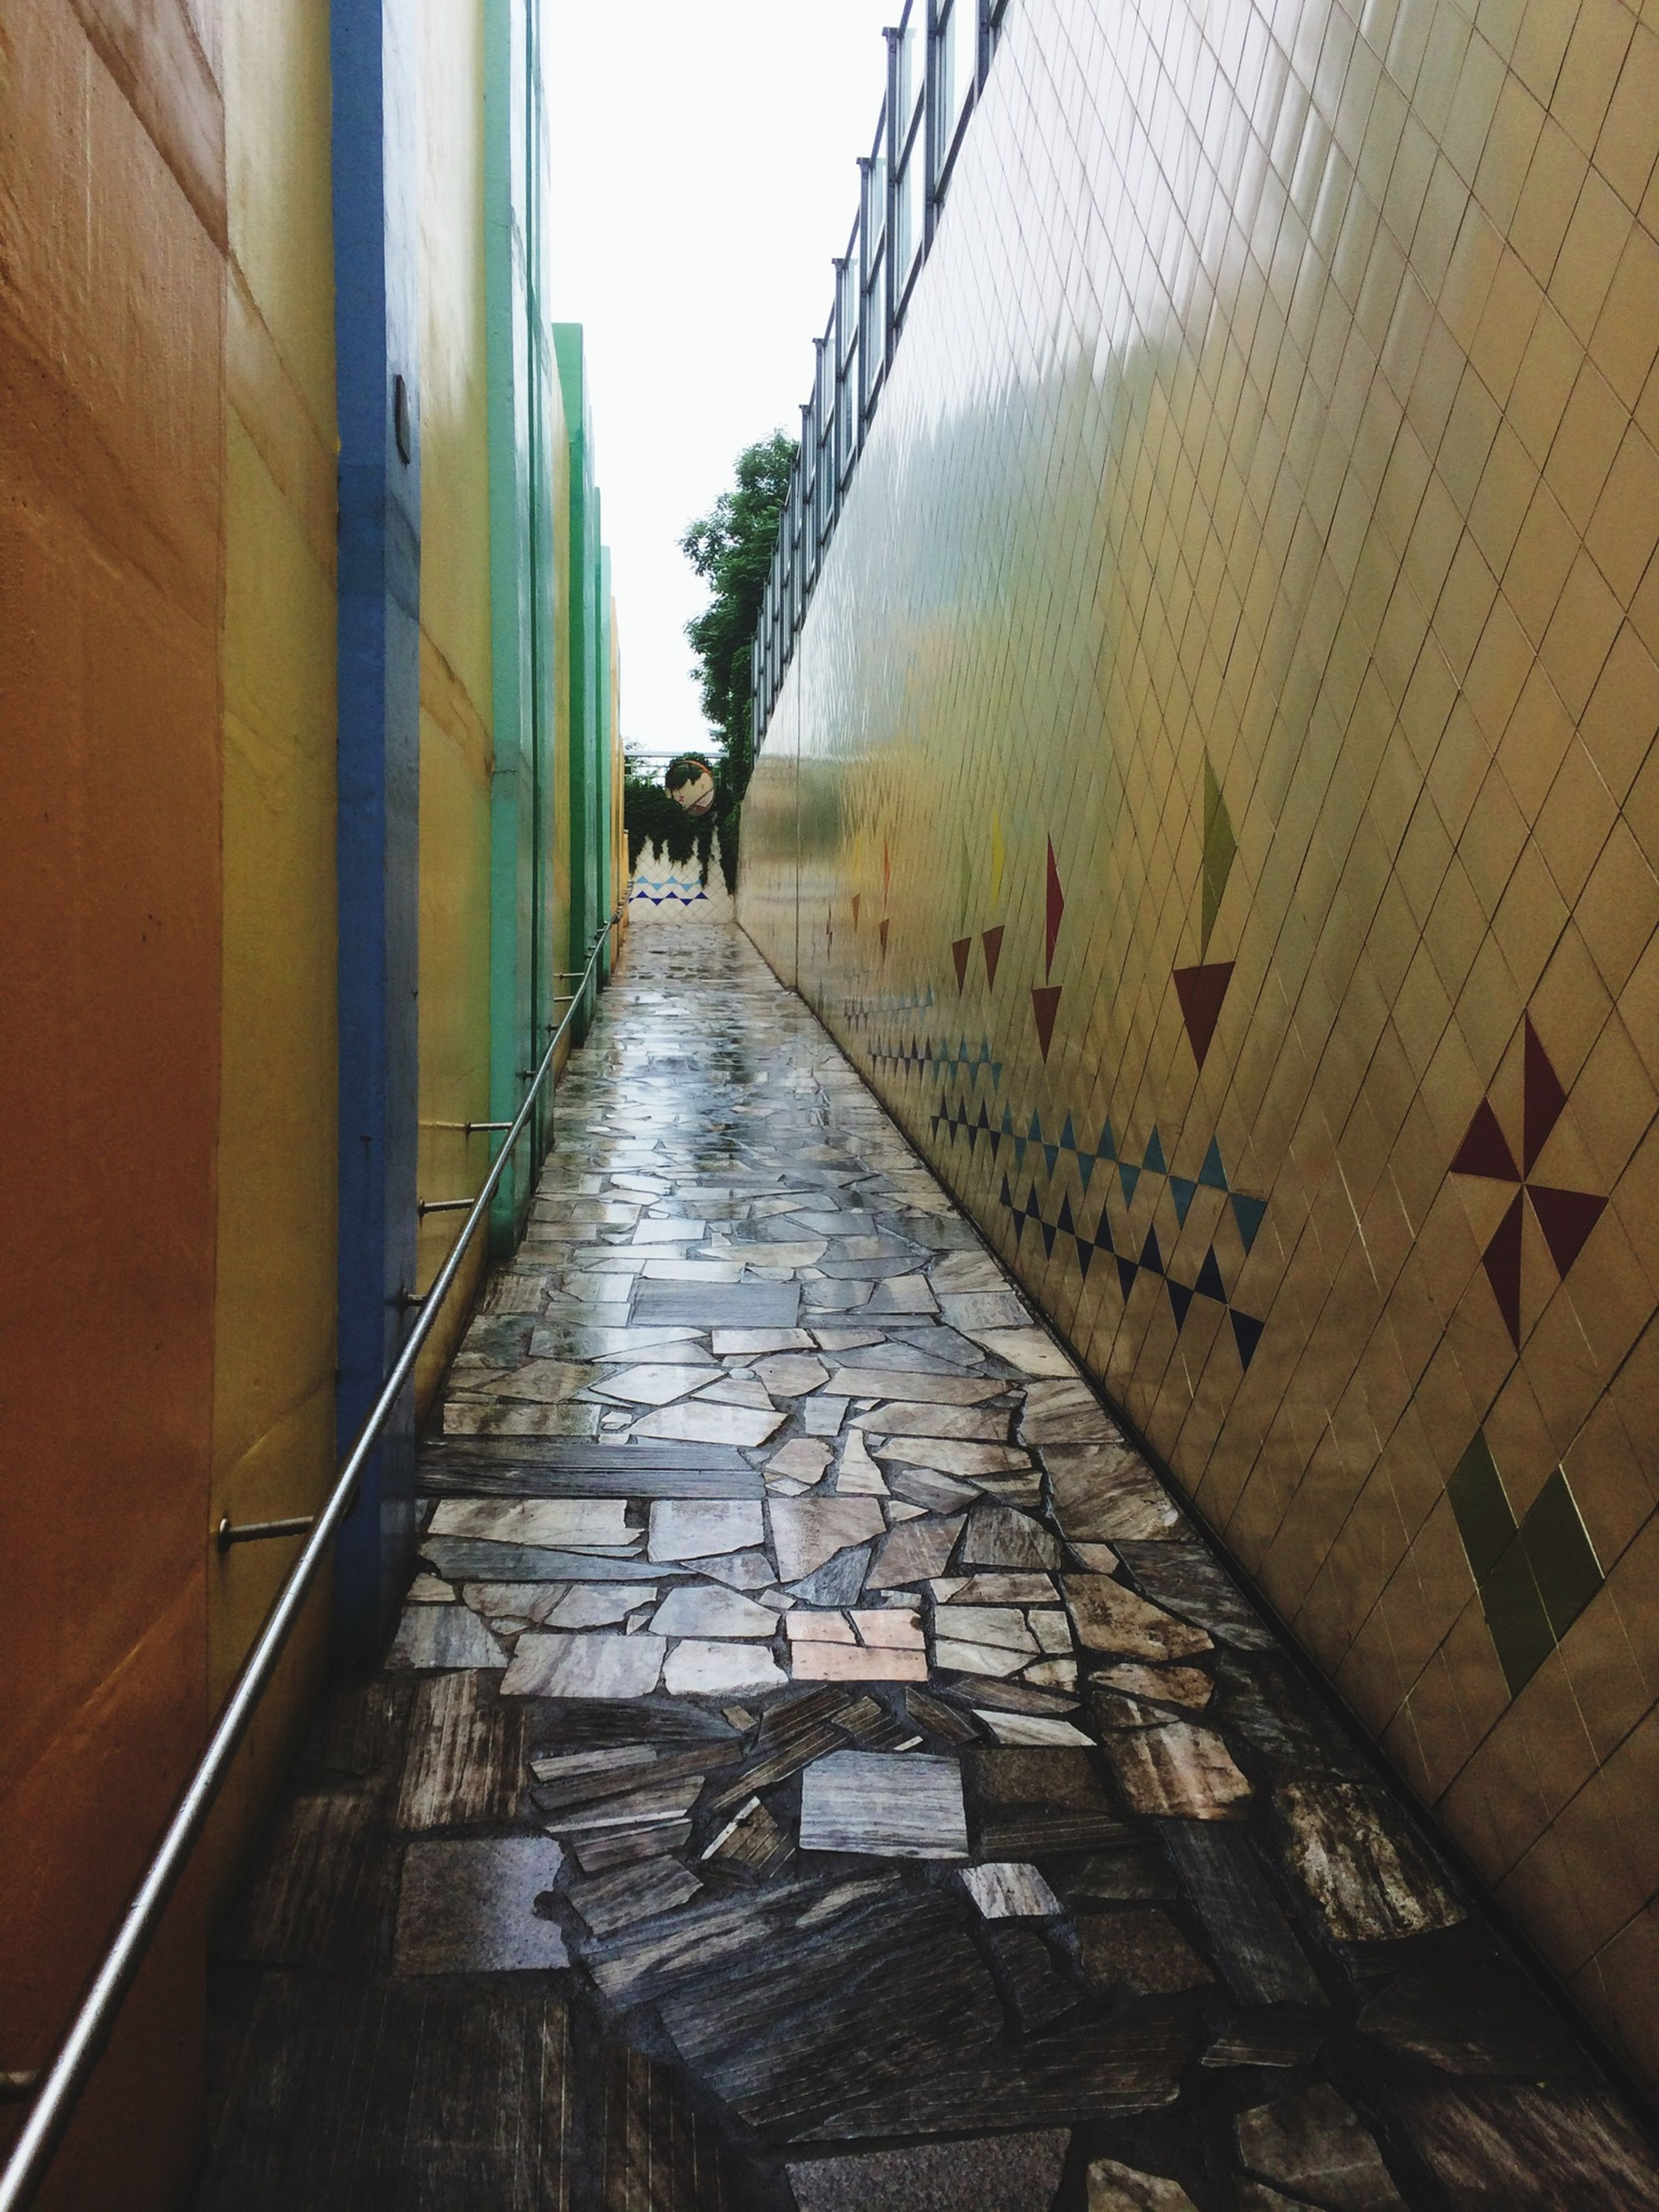 architecture, built structure, the way forward, building exterior, diminishing perspective, vanishing point, building, wall - building feature, narrow, alley, brick wall, residential structure, day, residential building, cobblestone, no people, city, walkway, outdoors, empty